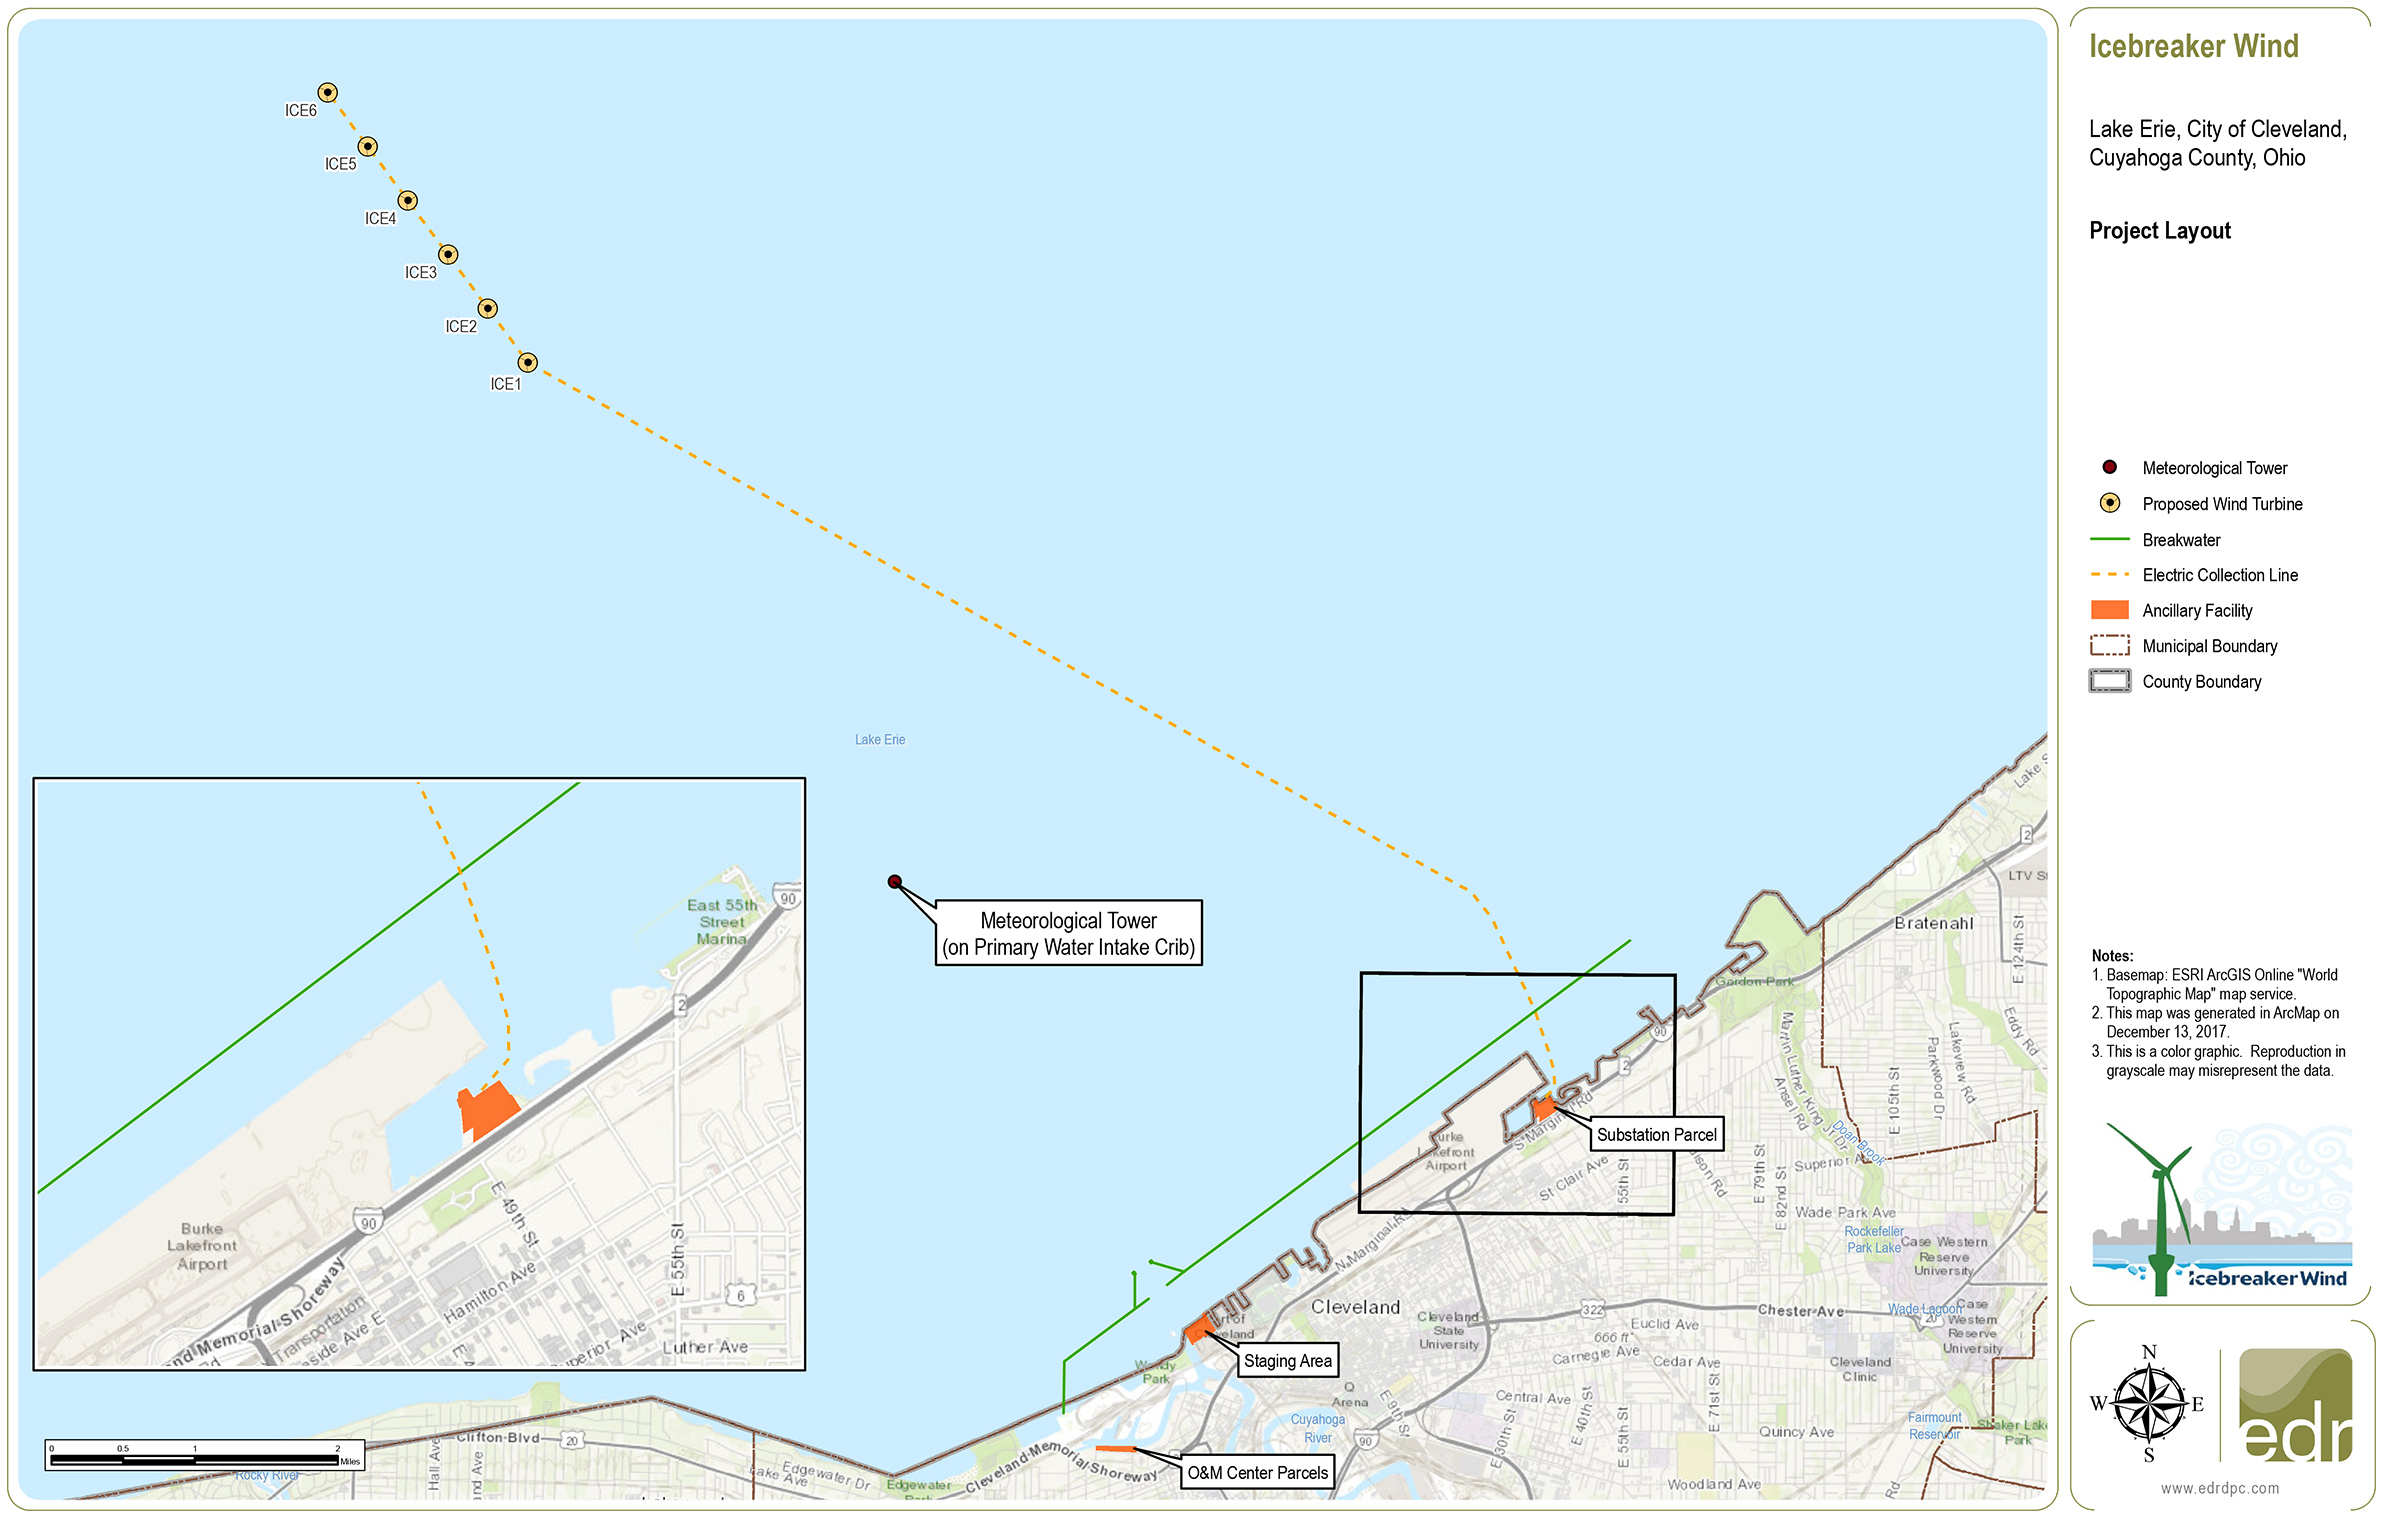 lake erie wind project